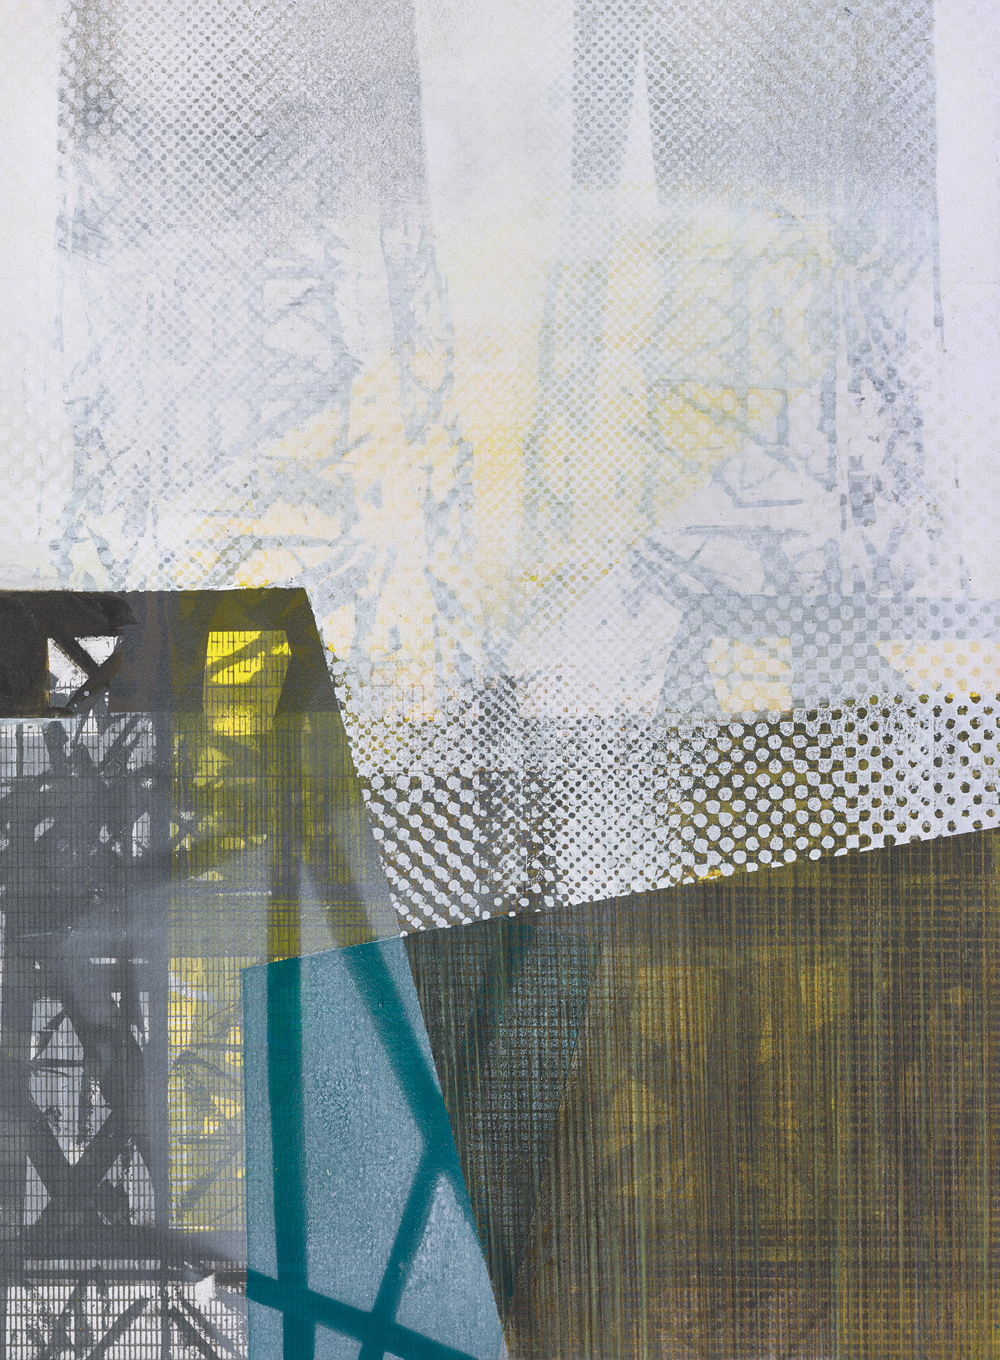 Amanda Knowles, Duwamish Study III, 2018, screen print, graphite, acrylic on paper, 14.75 x 10.75 inches, $650.